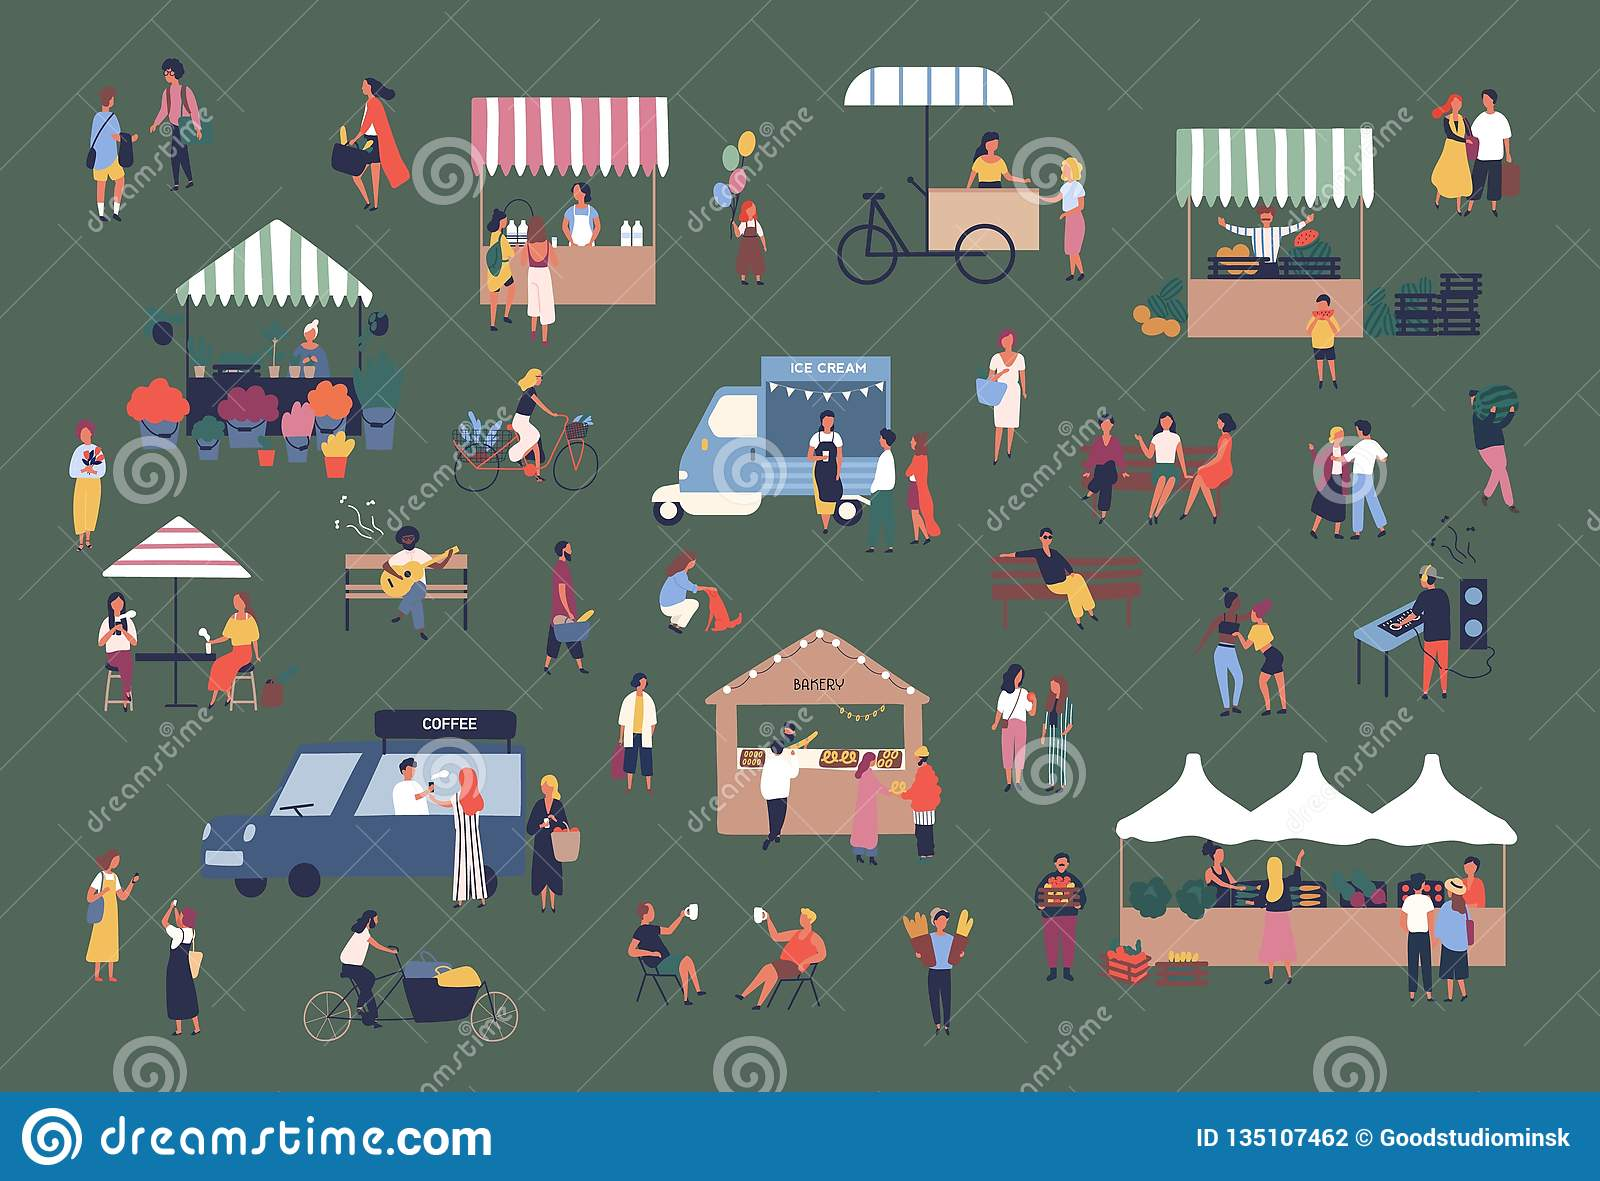 Outdoor fair, market or street food festival. Men and women walking between stalls, kiosks and vans, buying products